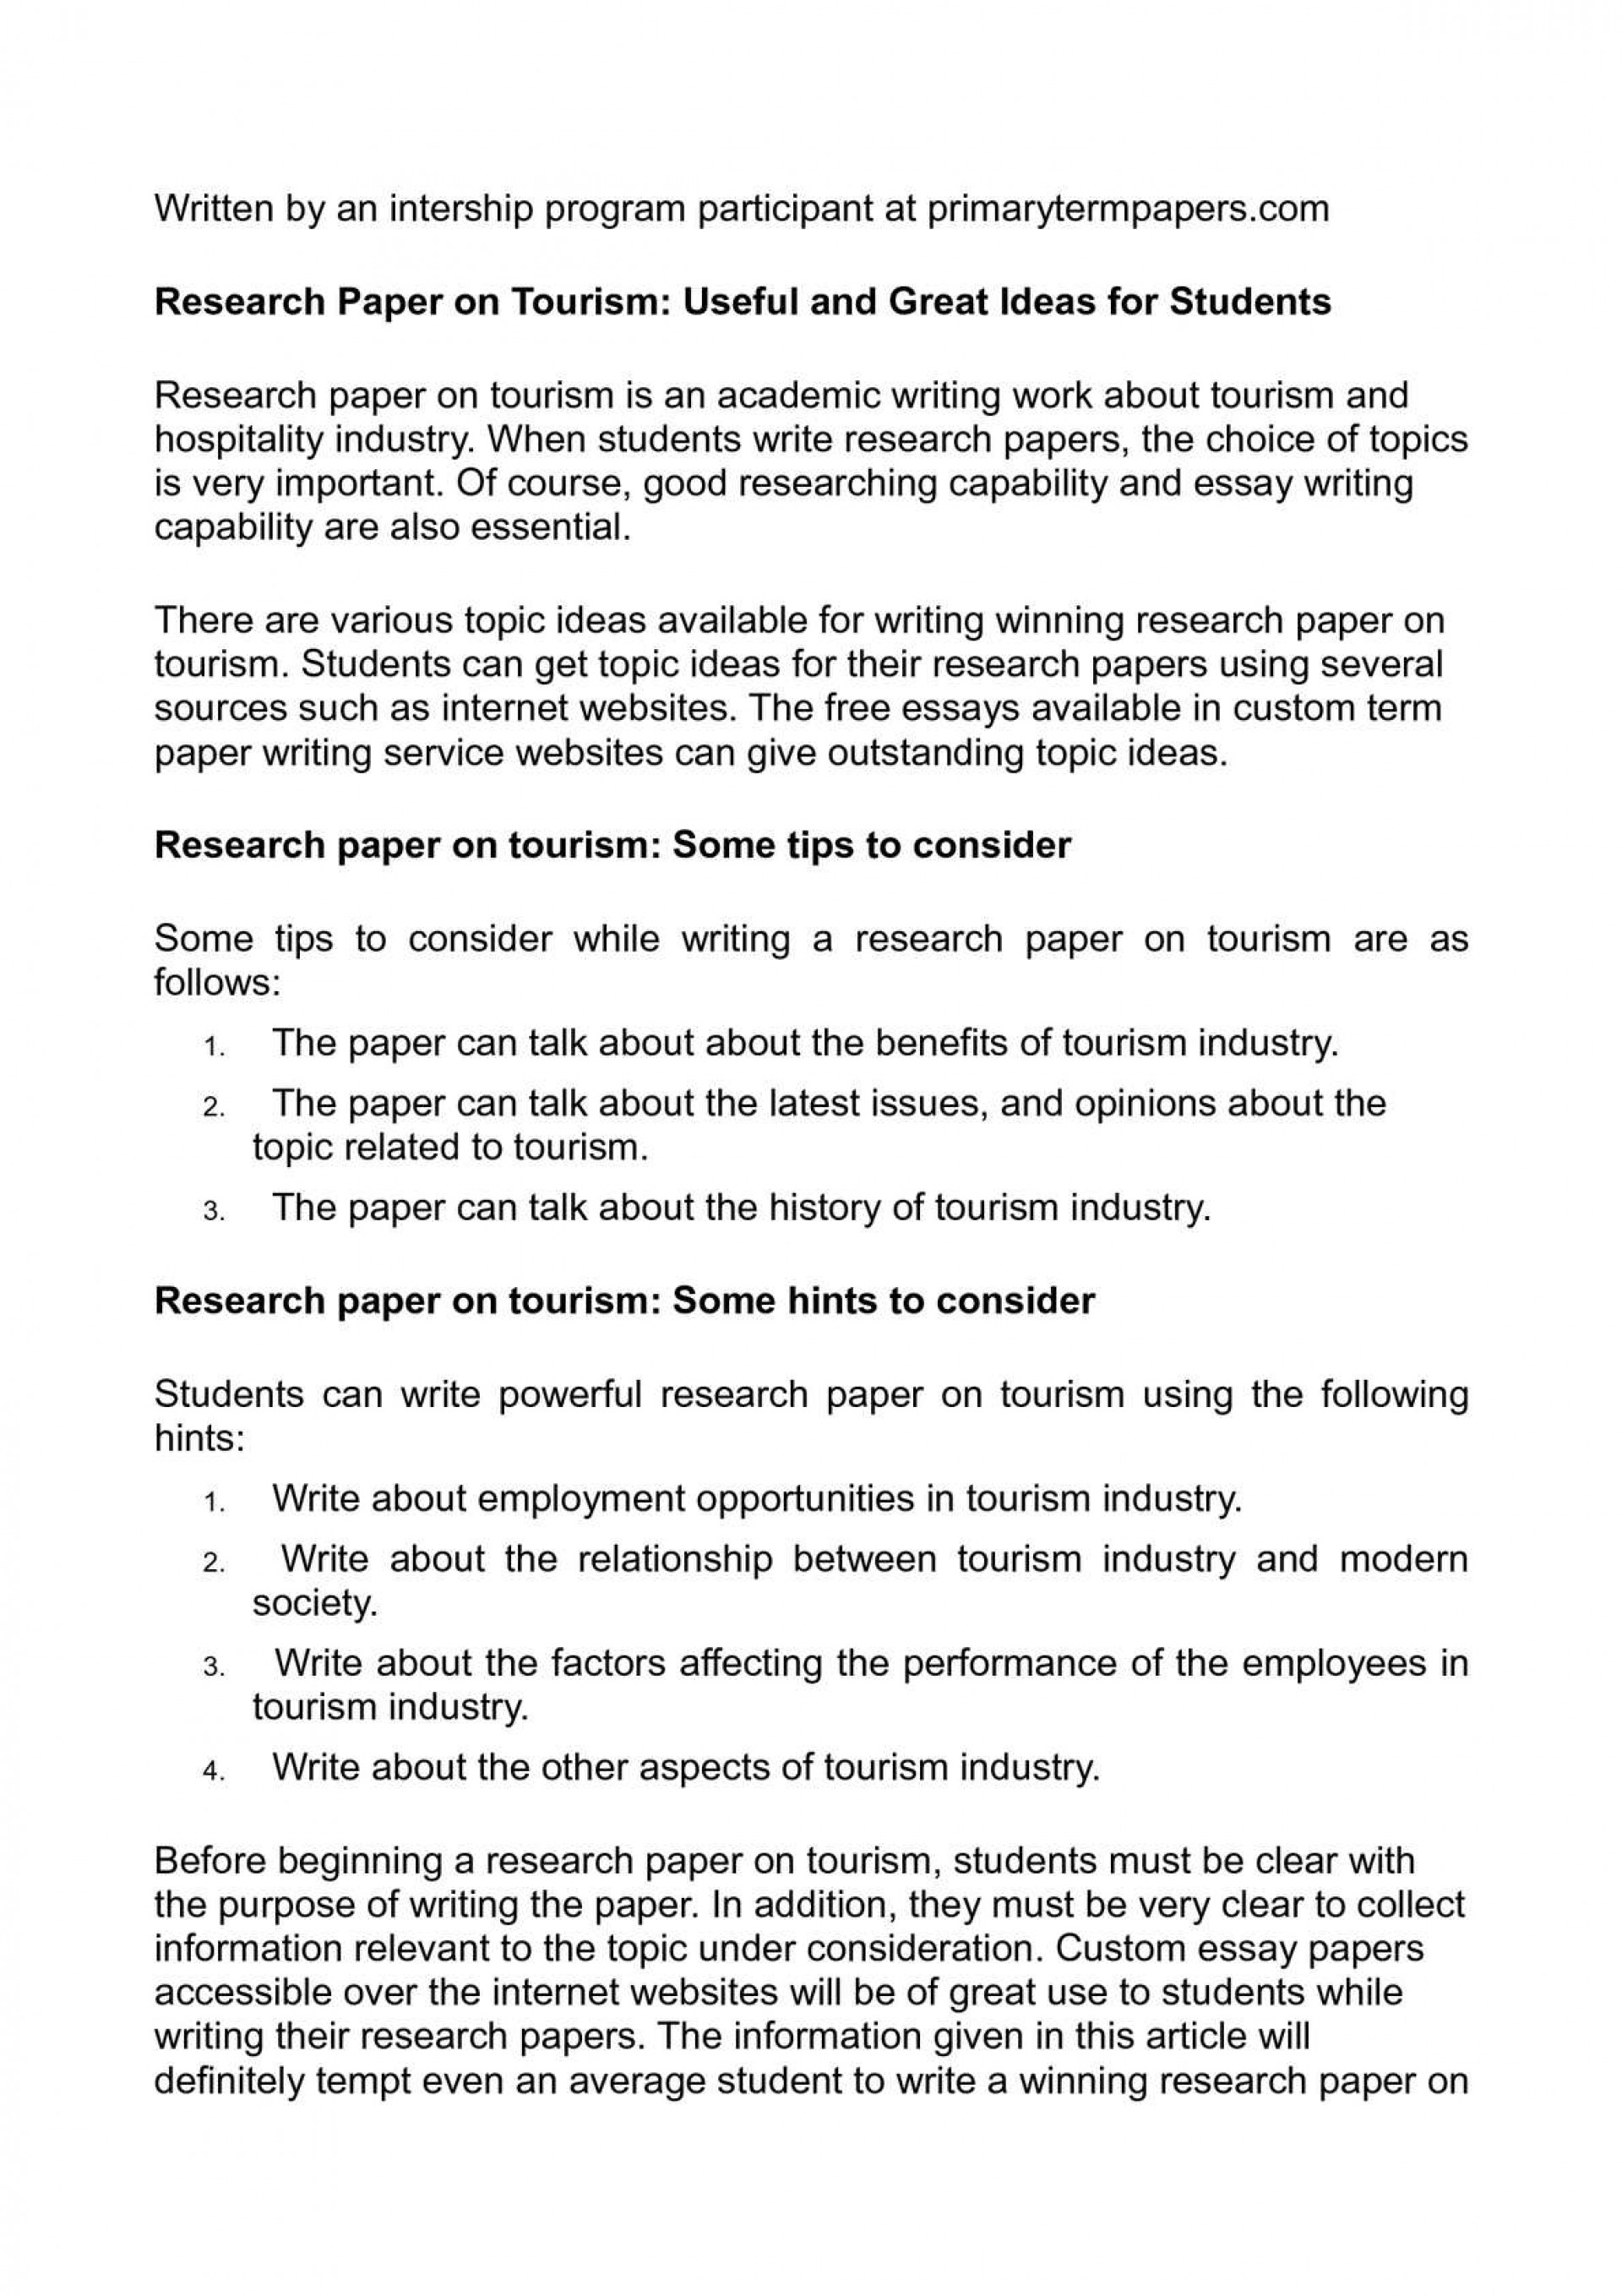 006 P1 Topics To Write Research Paper Fearsome A On Fun History 1920